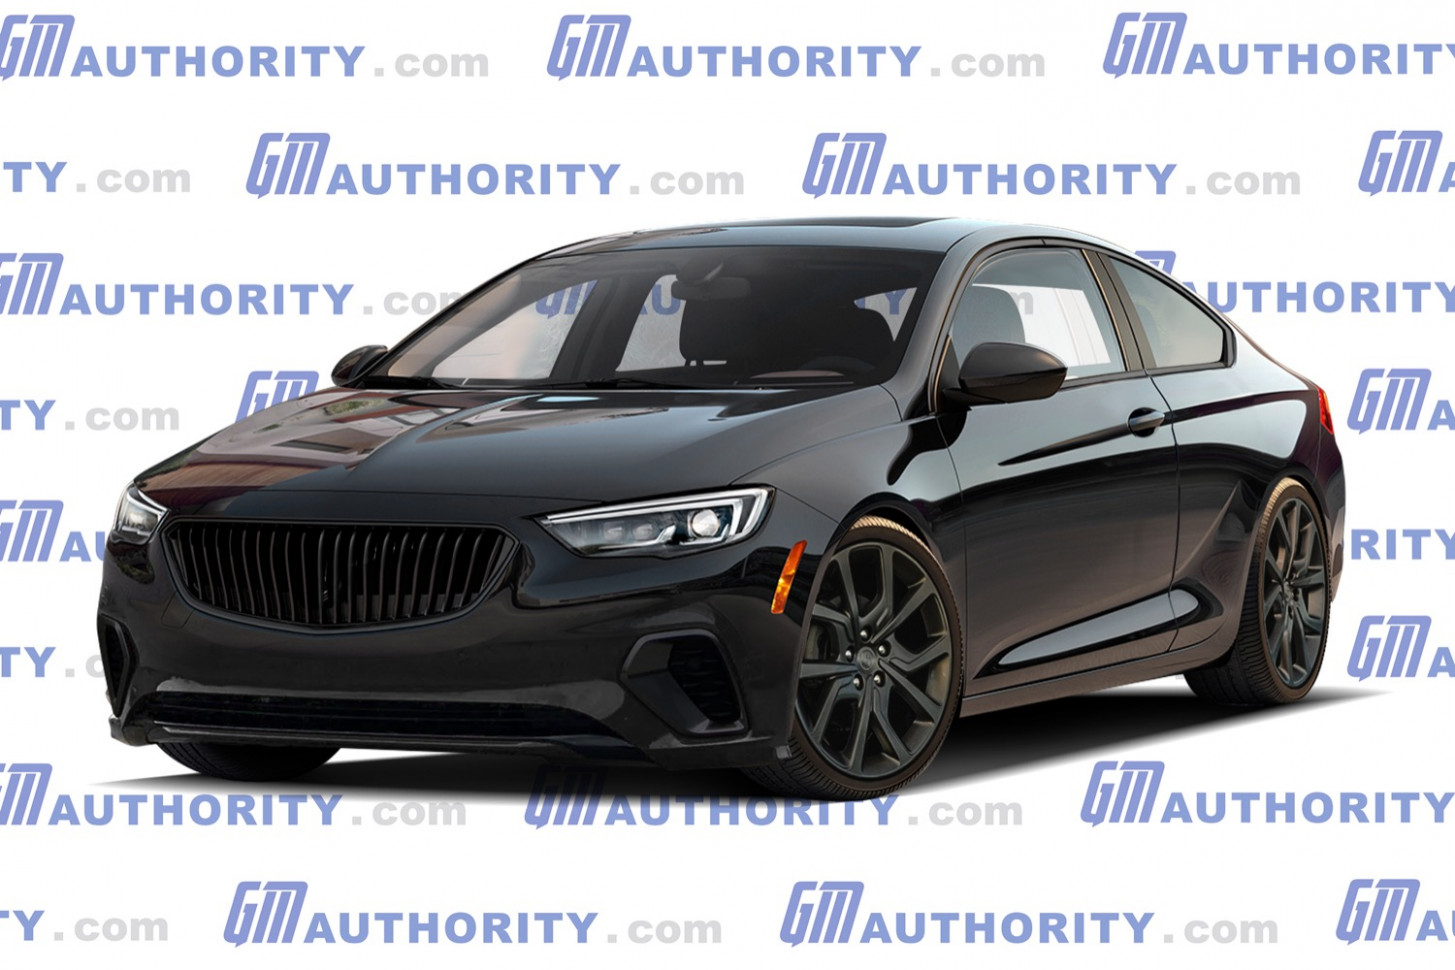 Release Buick Regal Grand National 2022